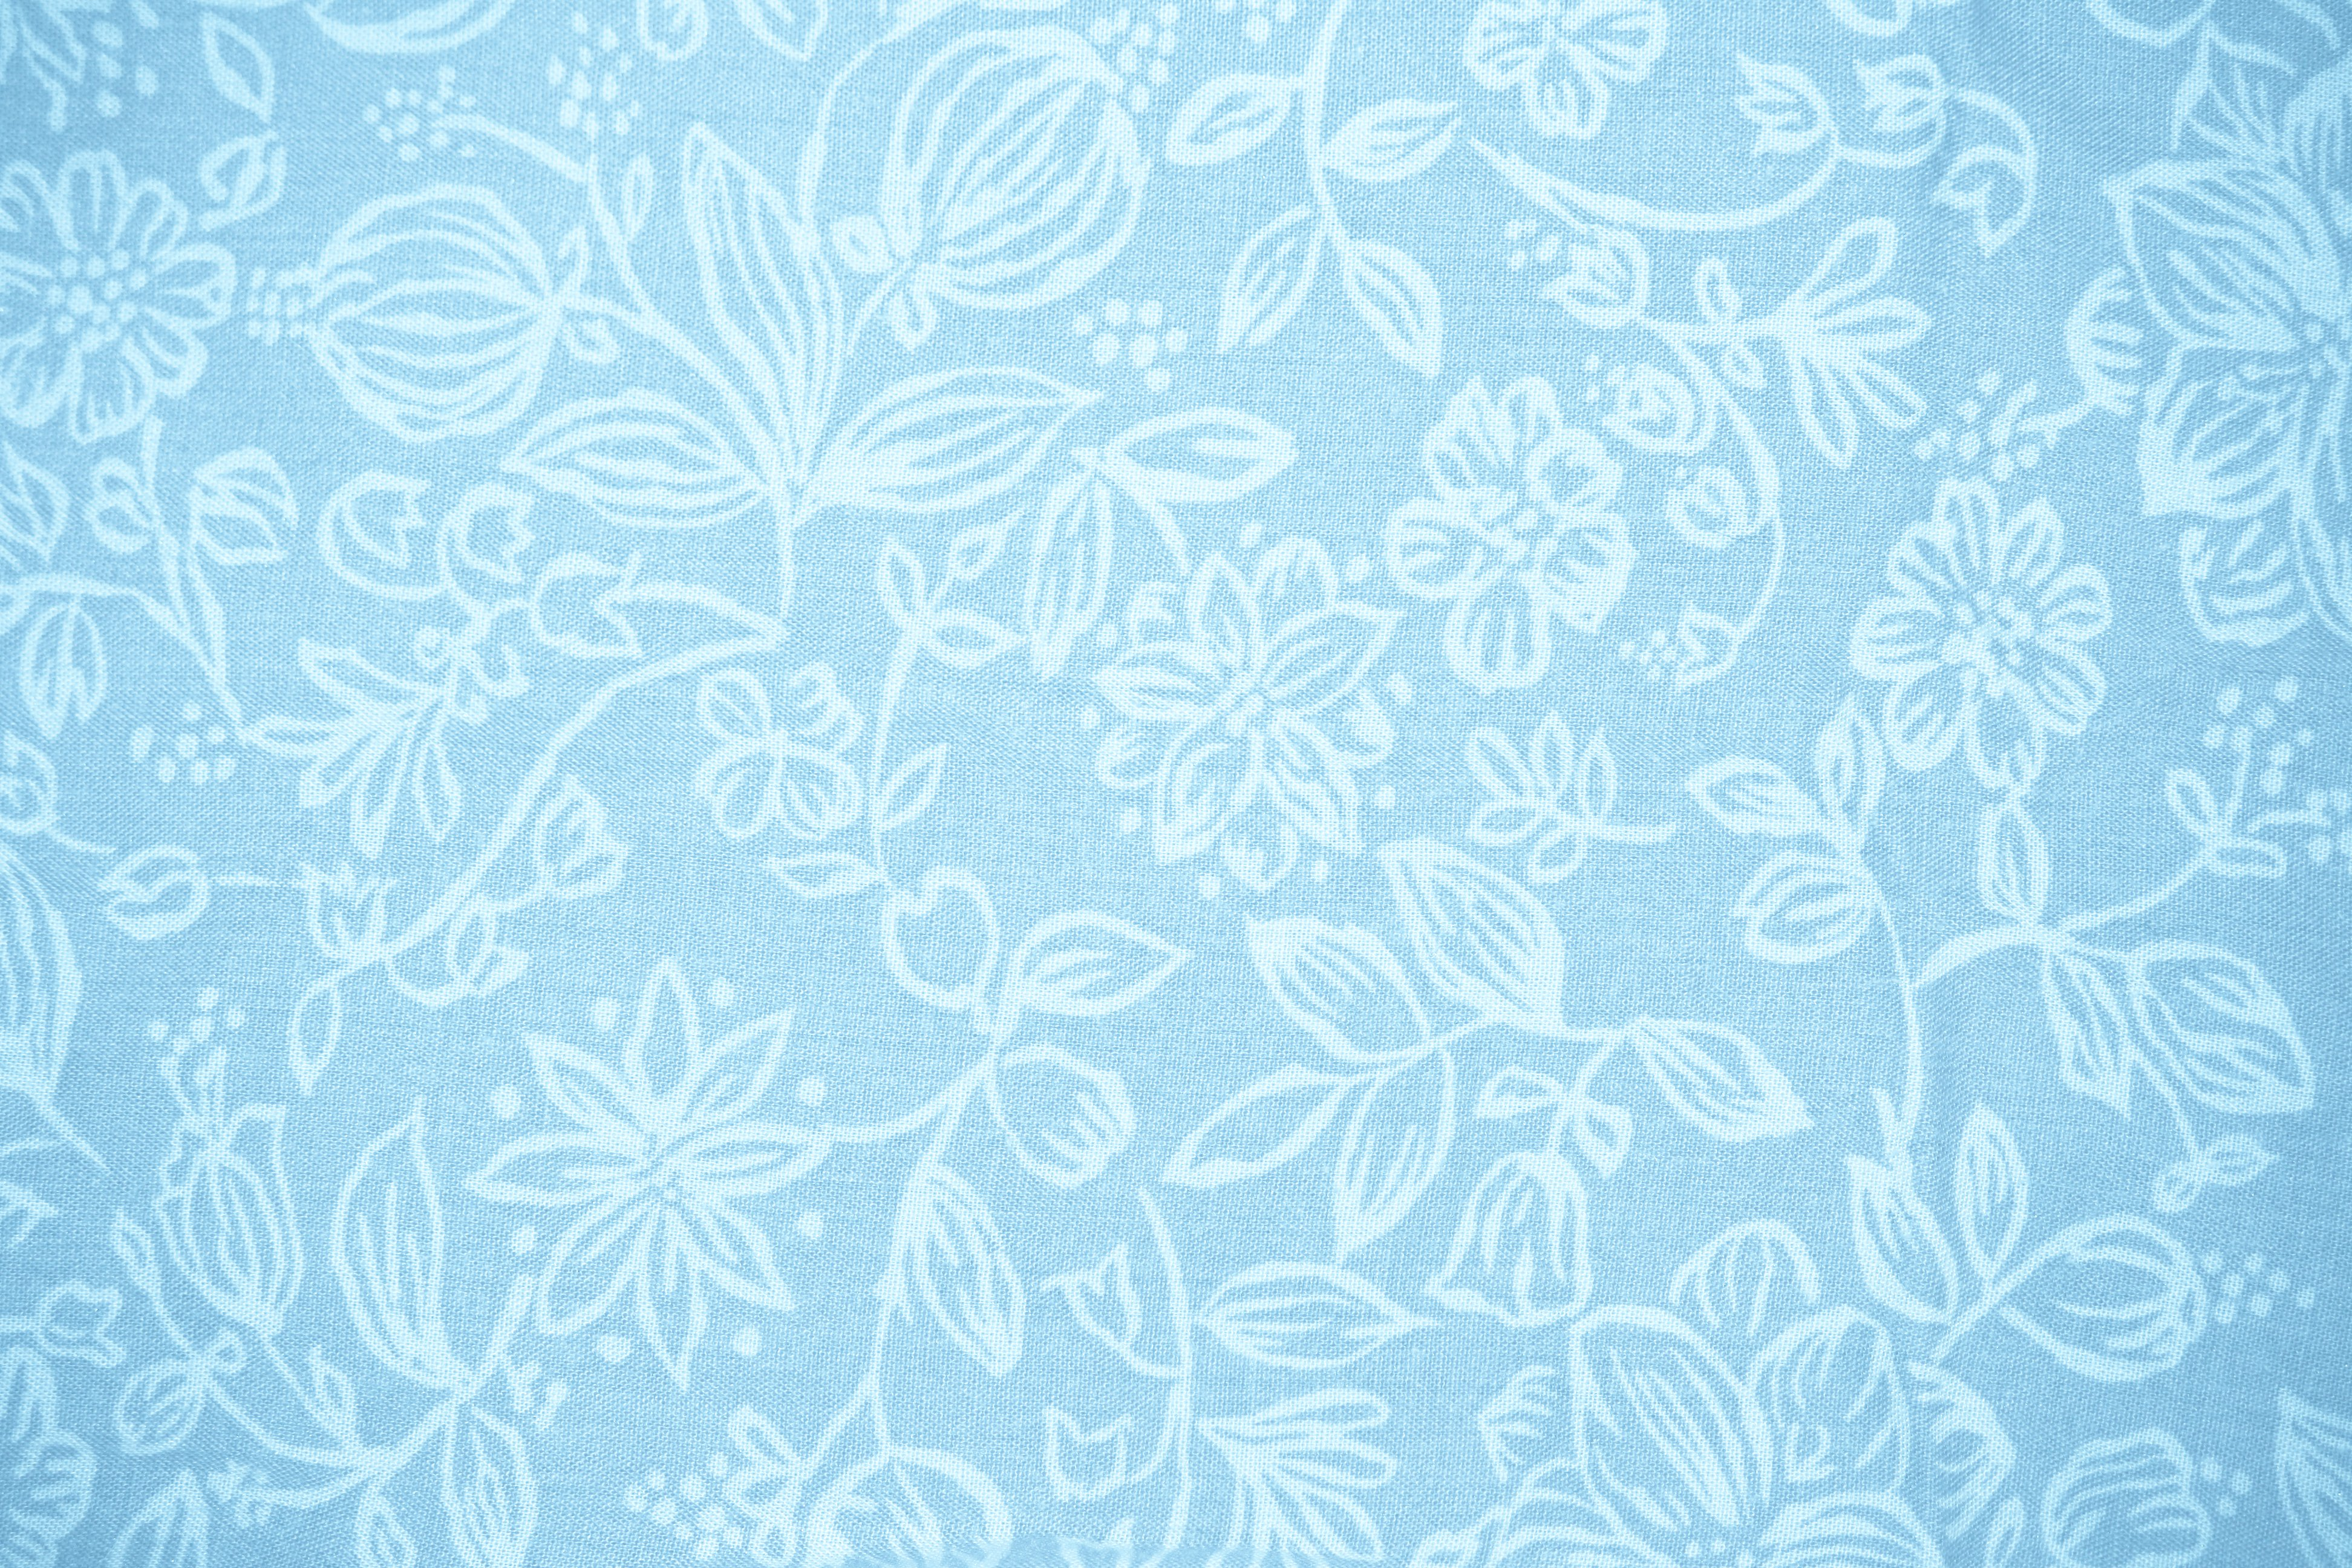 Baby Blue Fabric with Floral Pattern Texture - Free High Resolution ...